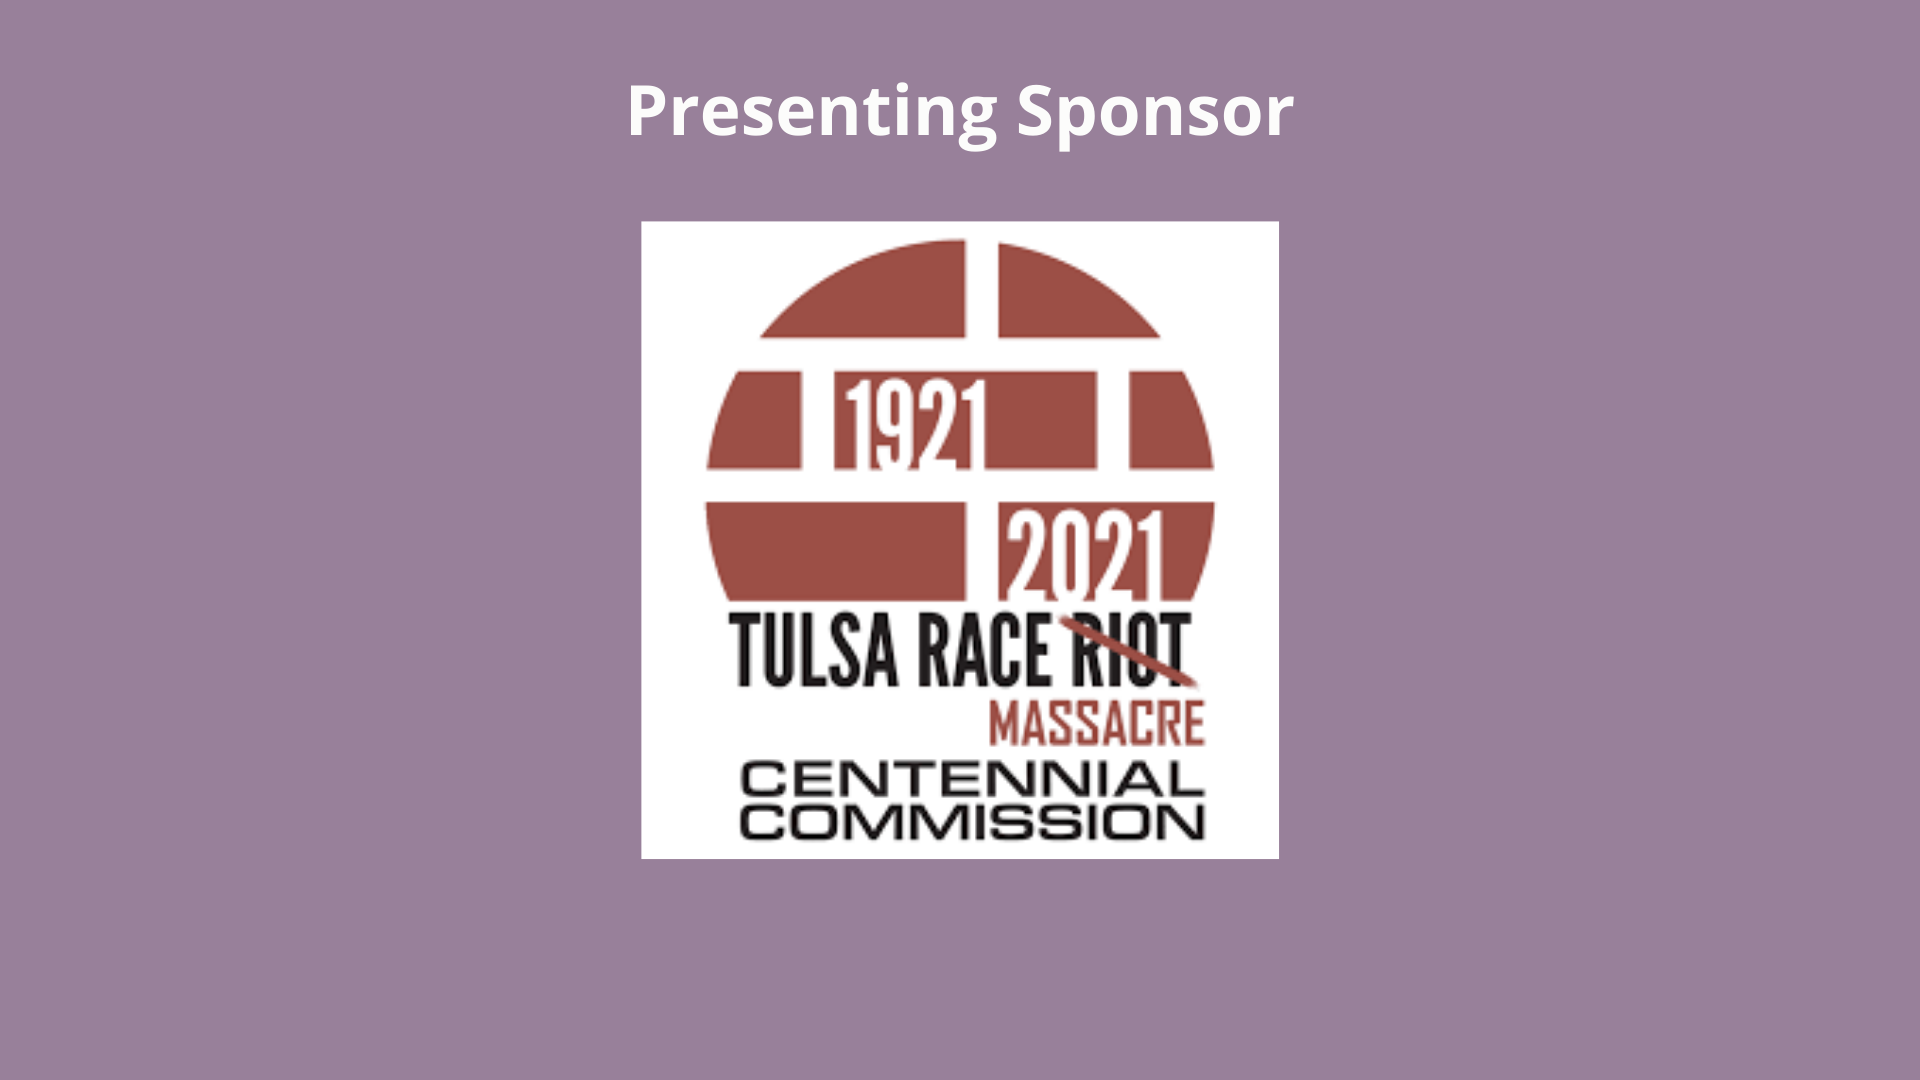 1921 Tulsa Race Massacre Centennial Commission